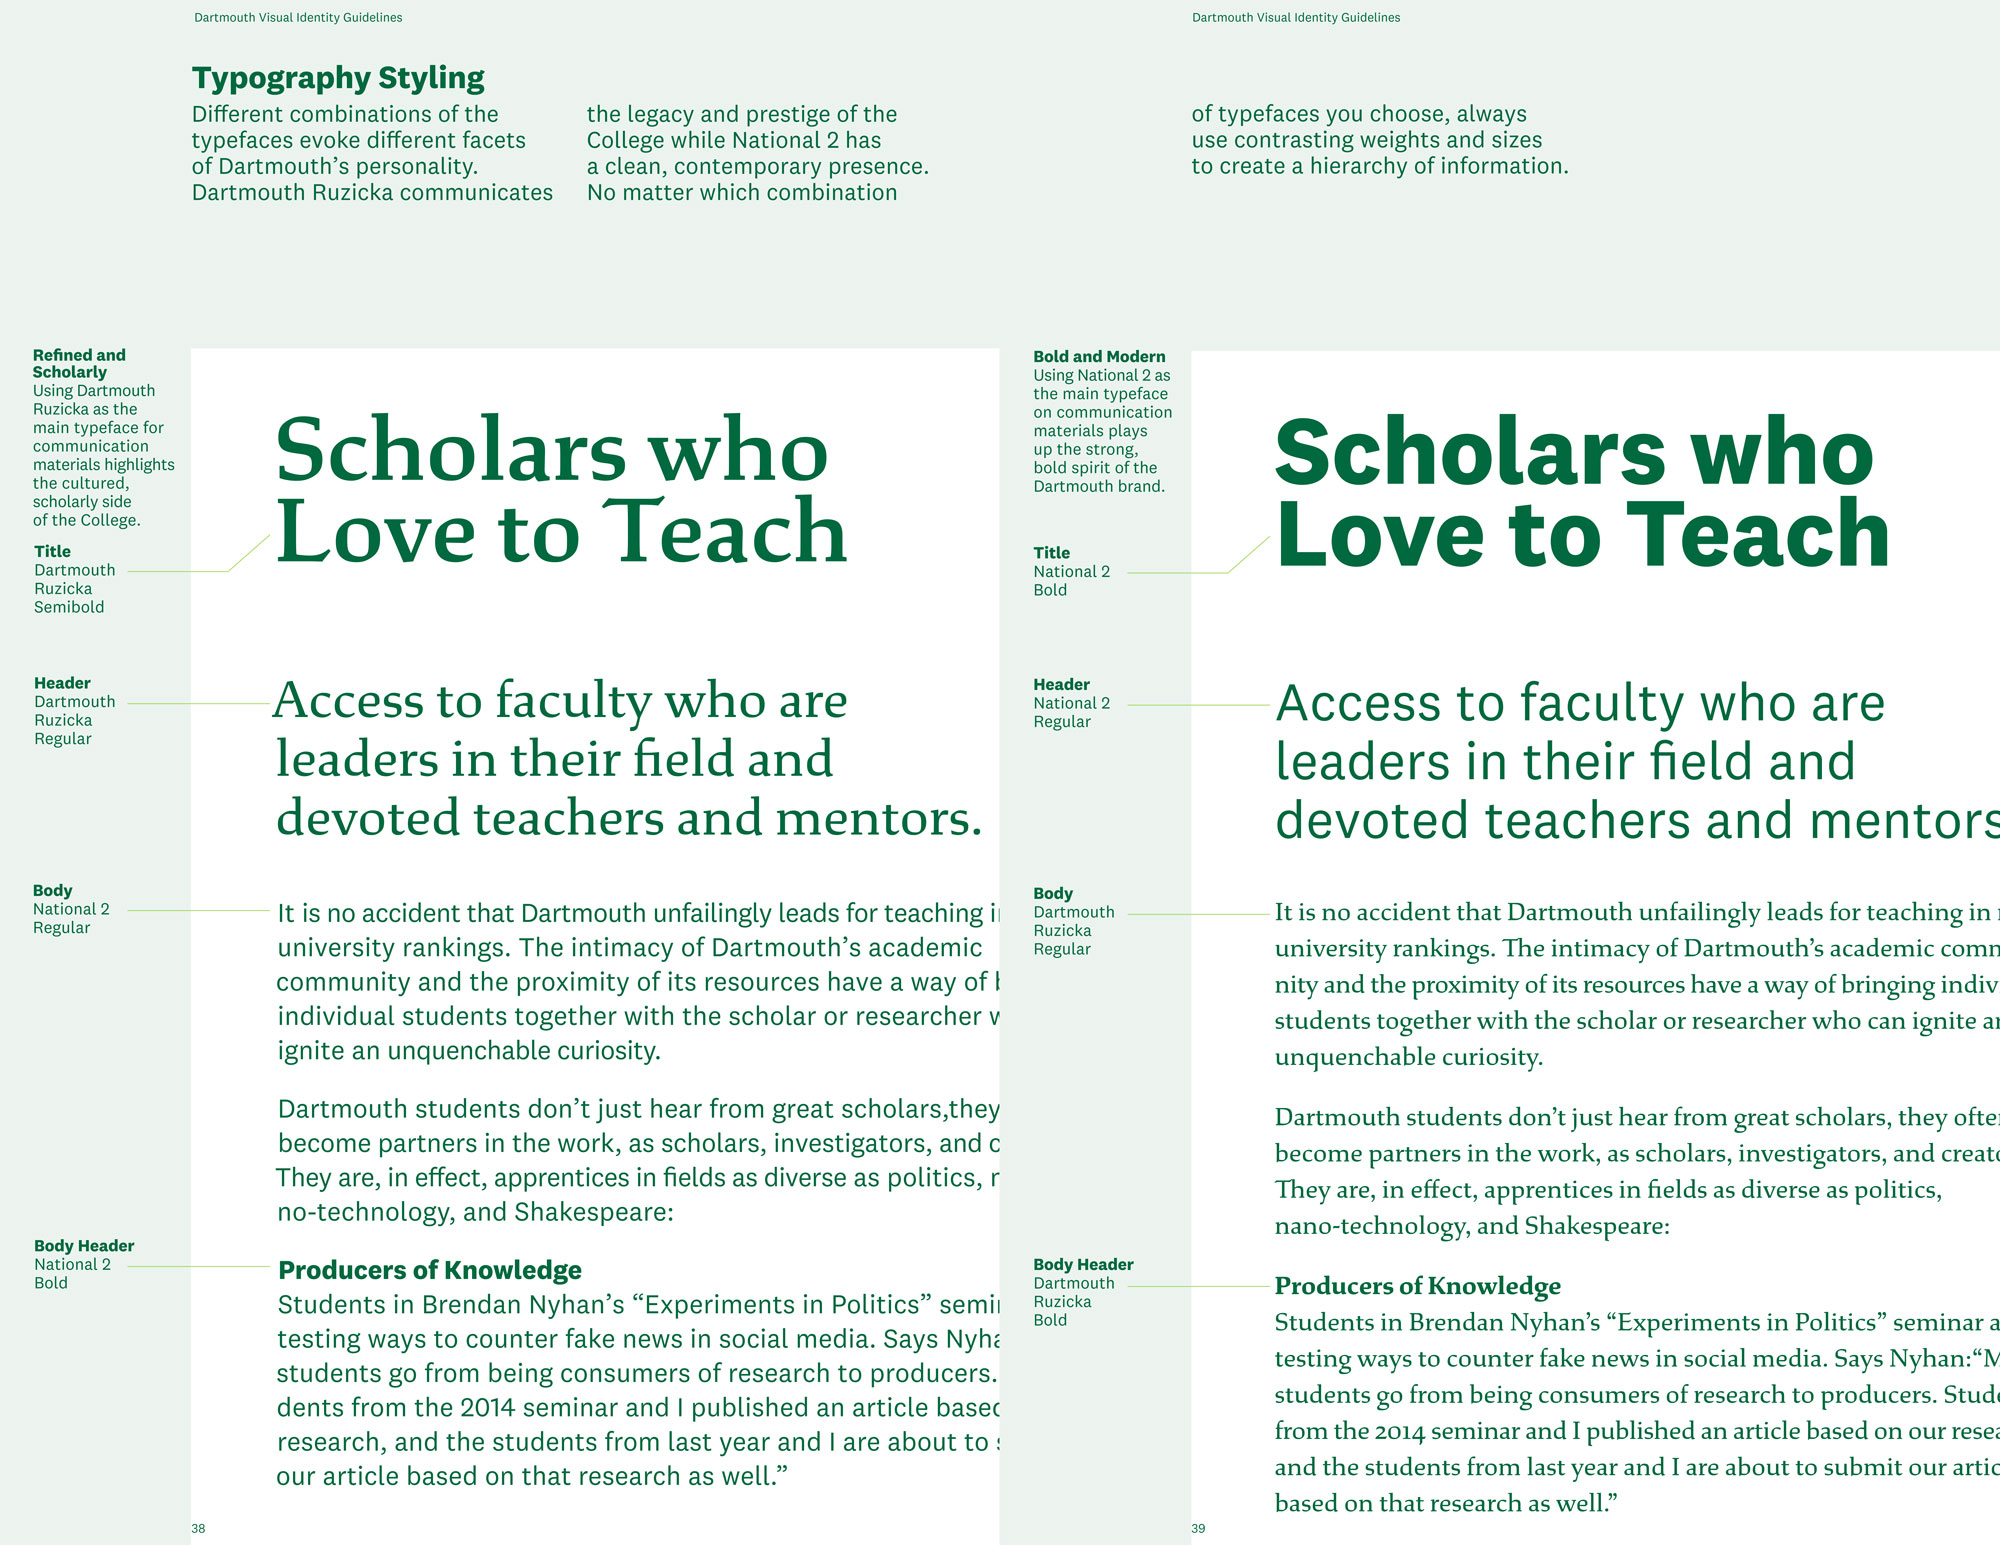 Dartmouth College identity system - Fonts In Use